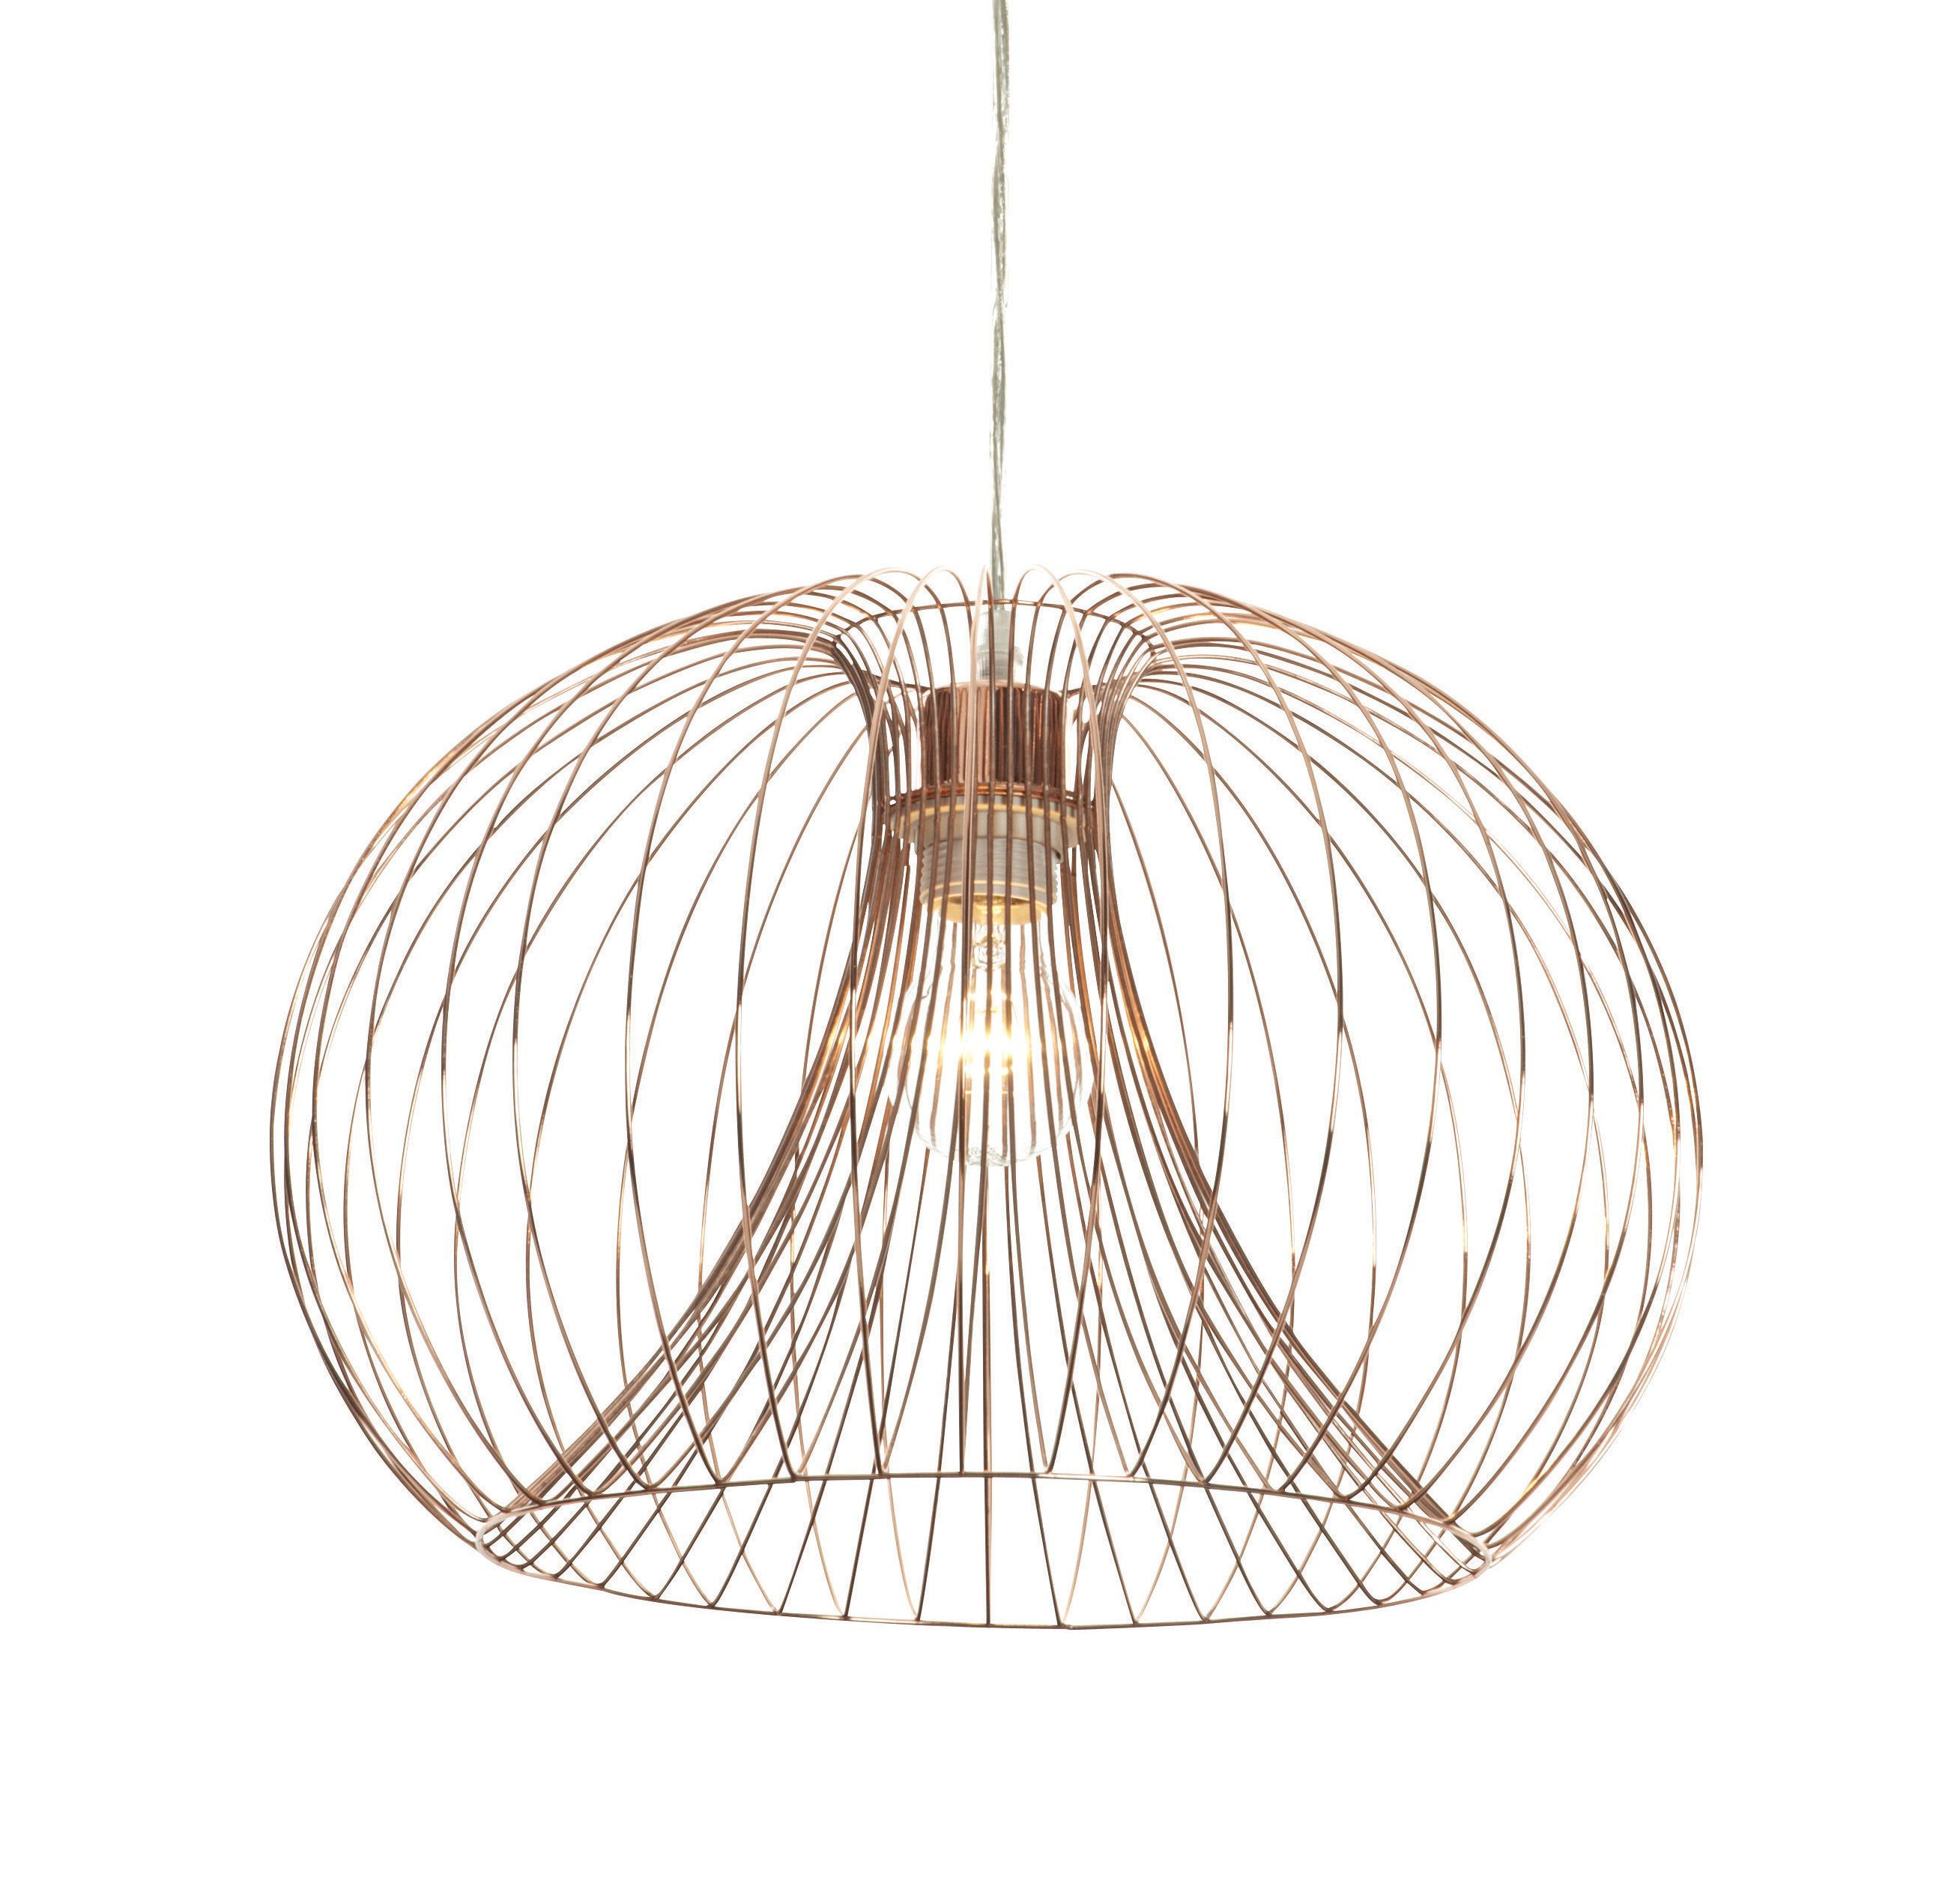 jonas wire copper pendant ceiling light pinterest wire pendant